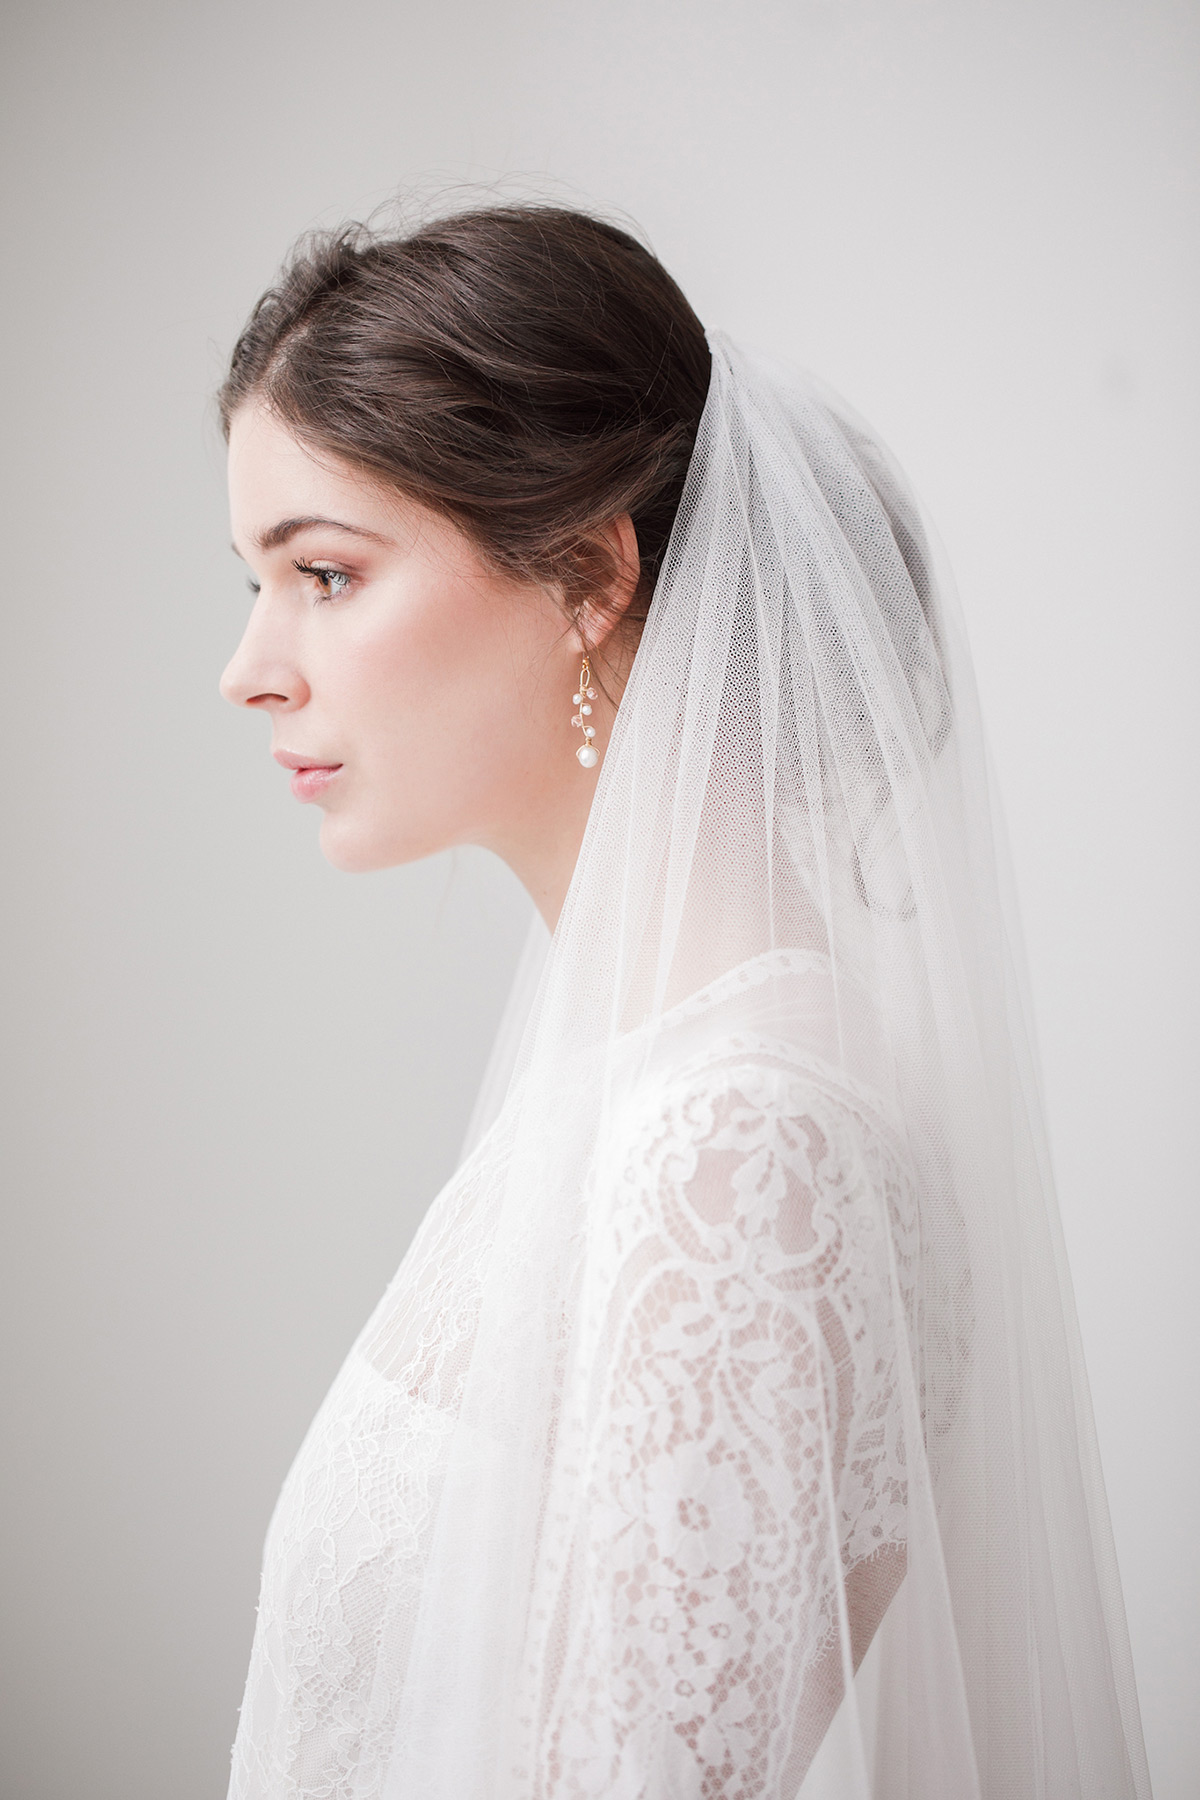 Romantic & Beautiful – The Veil Collection By Britten (Bridal Fashion Get Inspired Supplier Spotlight )